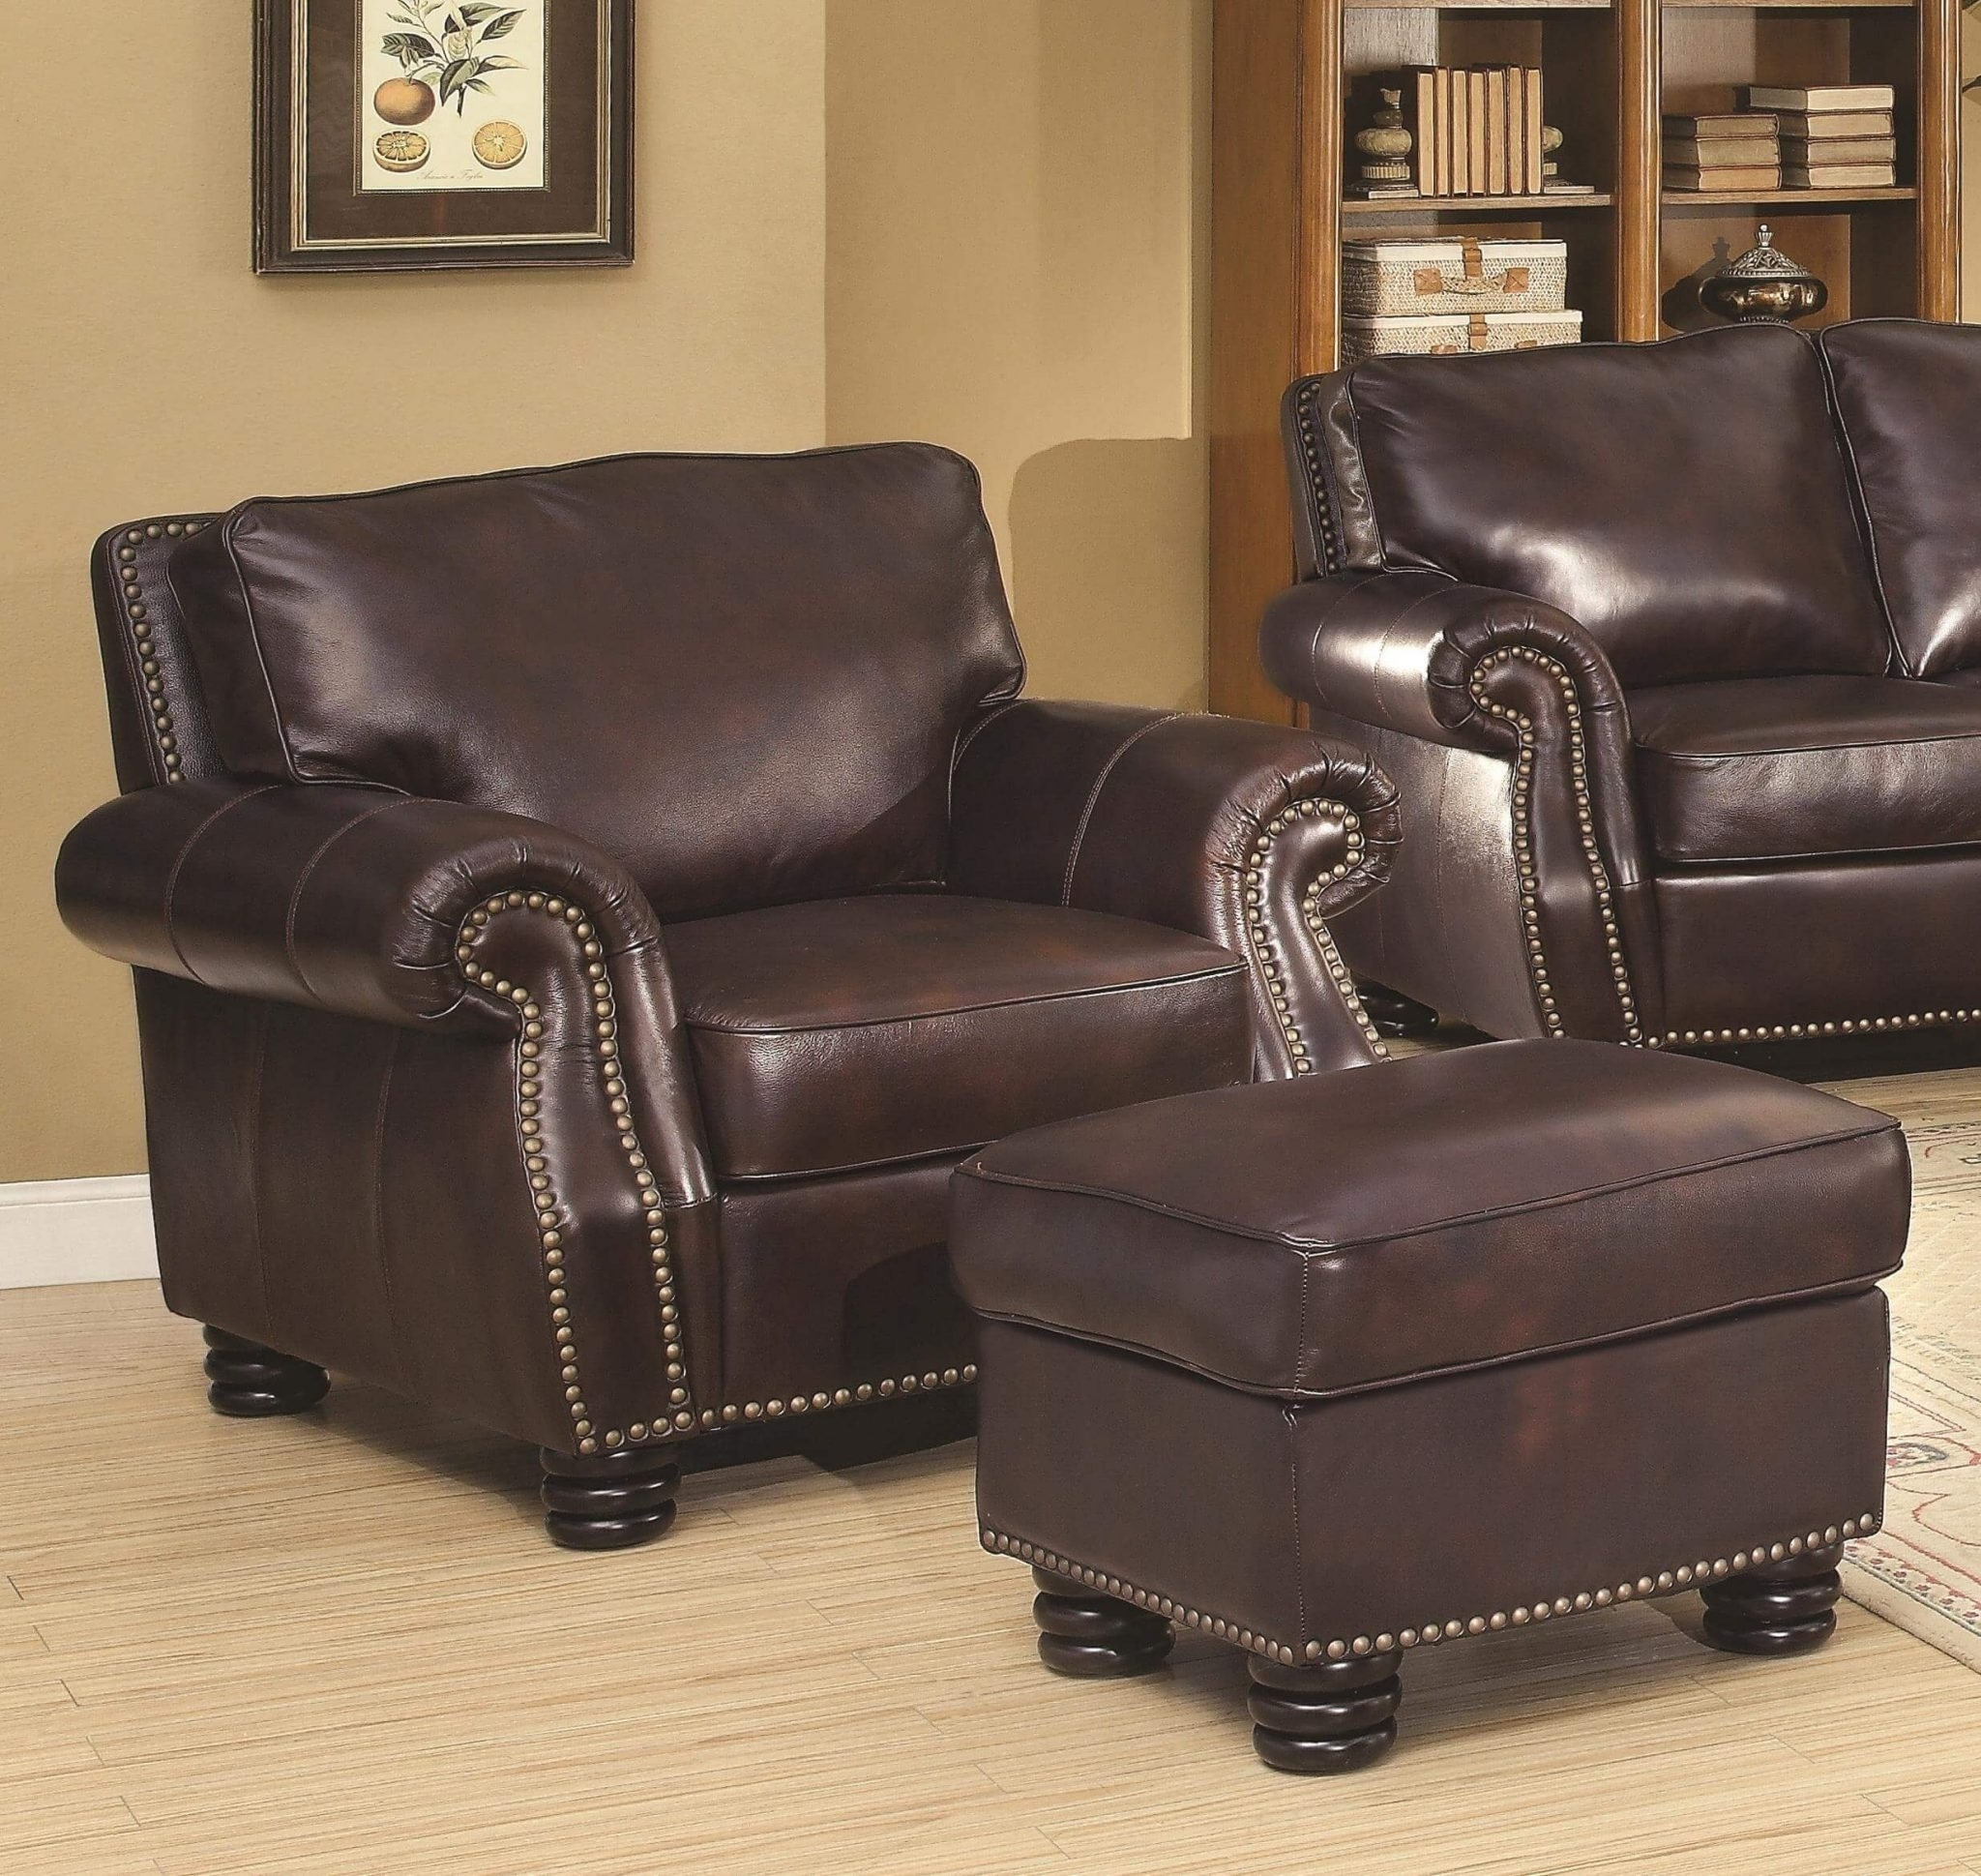 Furniture: Alluring Leather Chair And Ottoman For Cozy Home In Trendy Chairs With Ottoman (View 14 of 15)